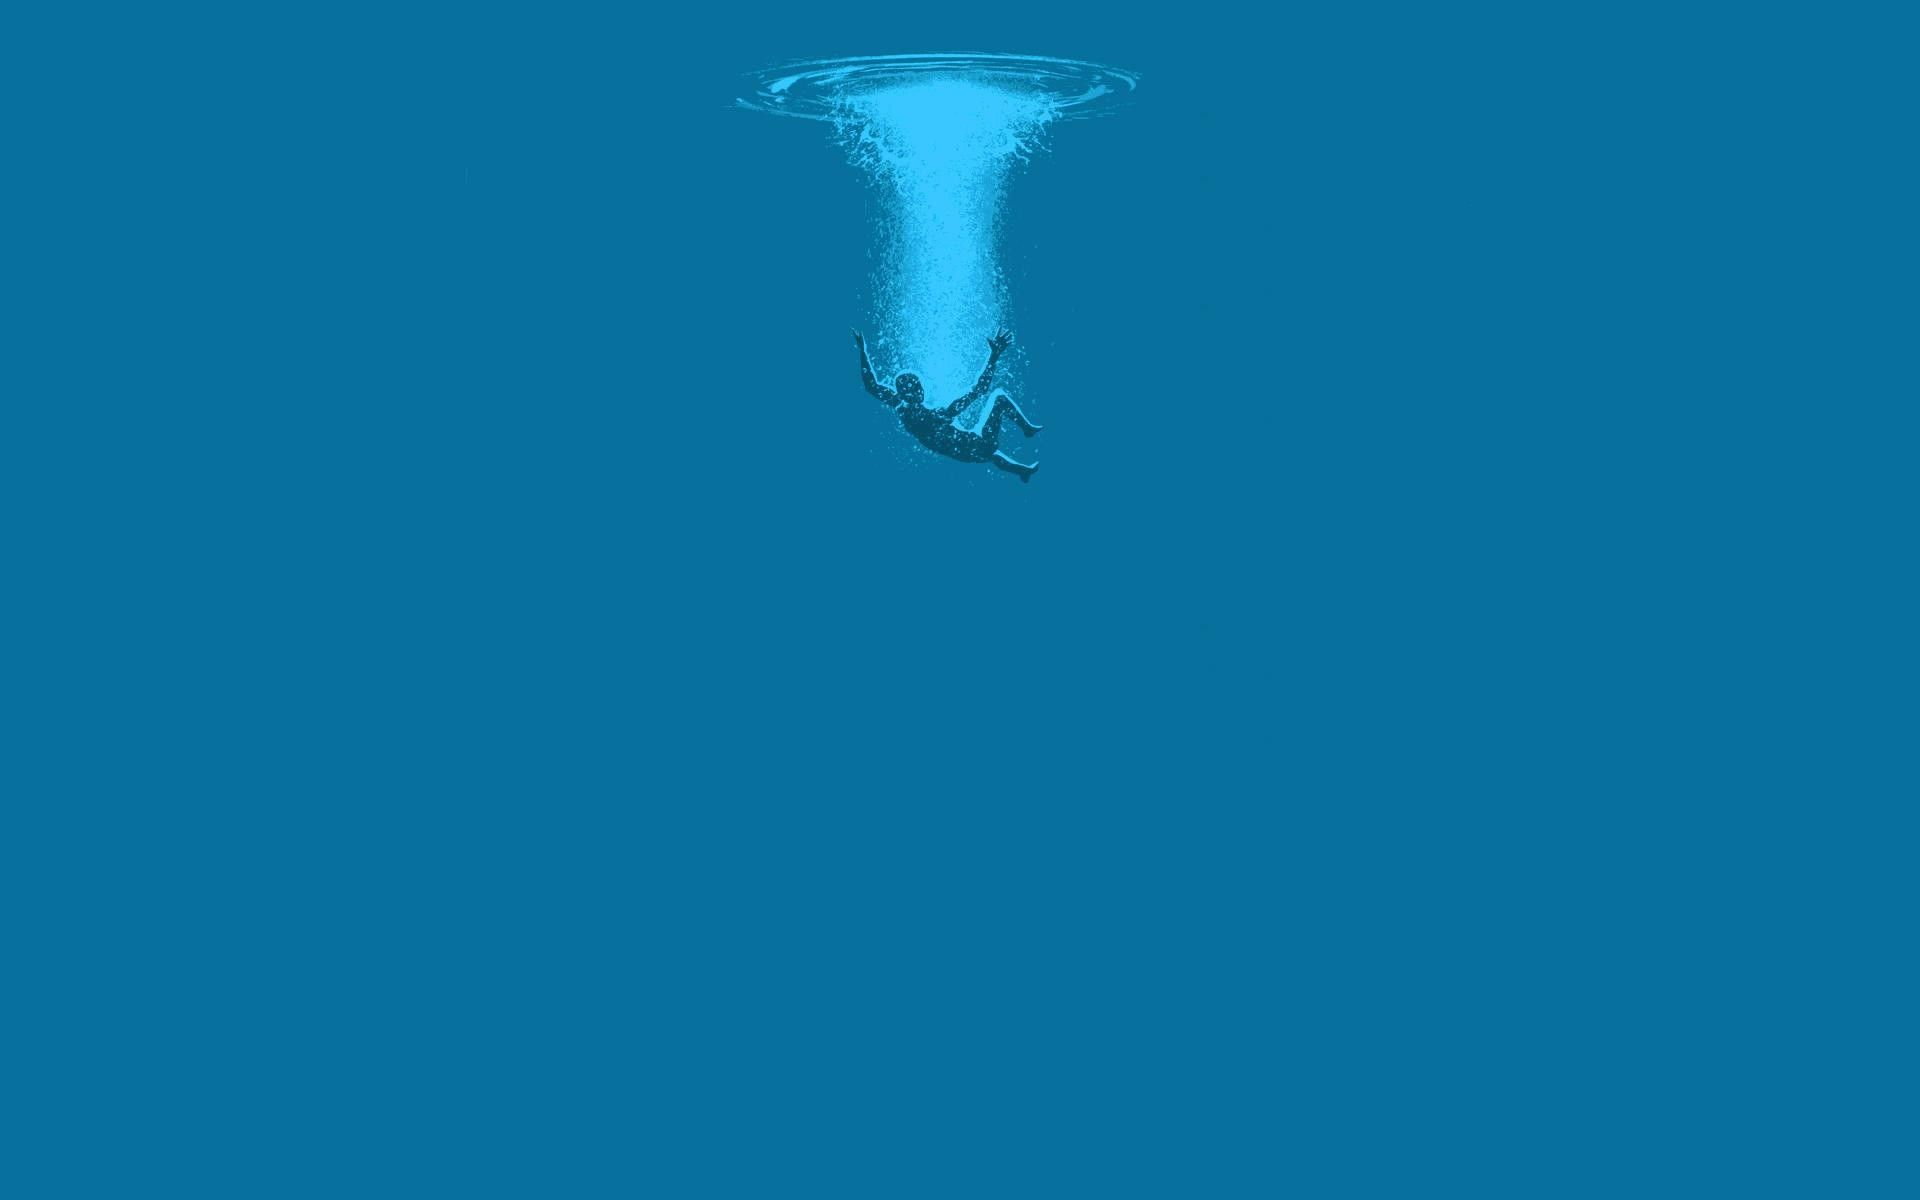 water, underwater, blue, minimalism, wallpaper